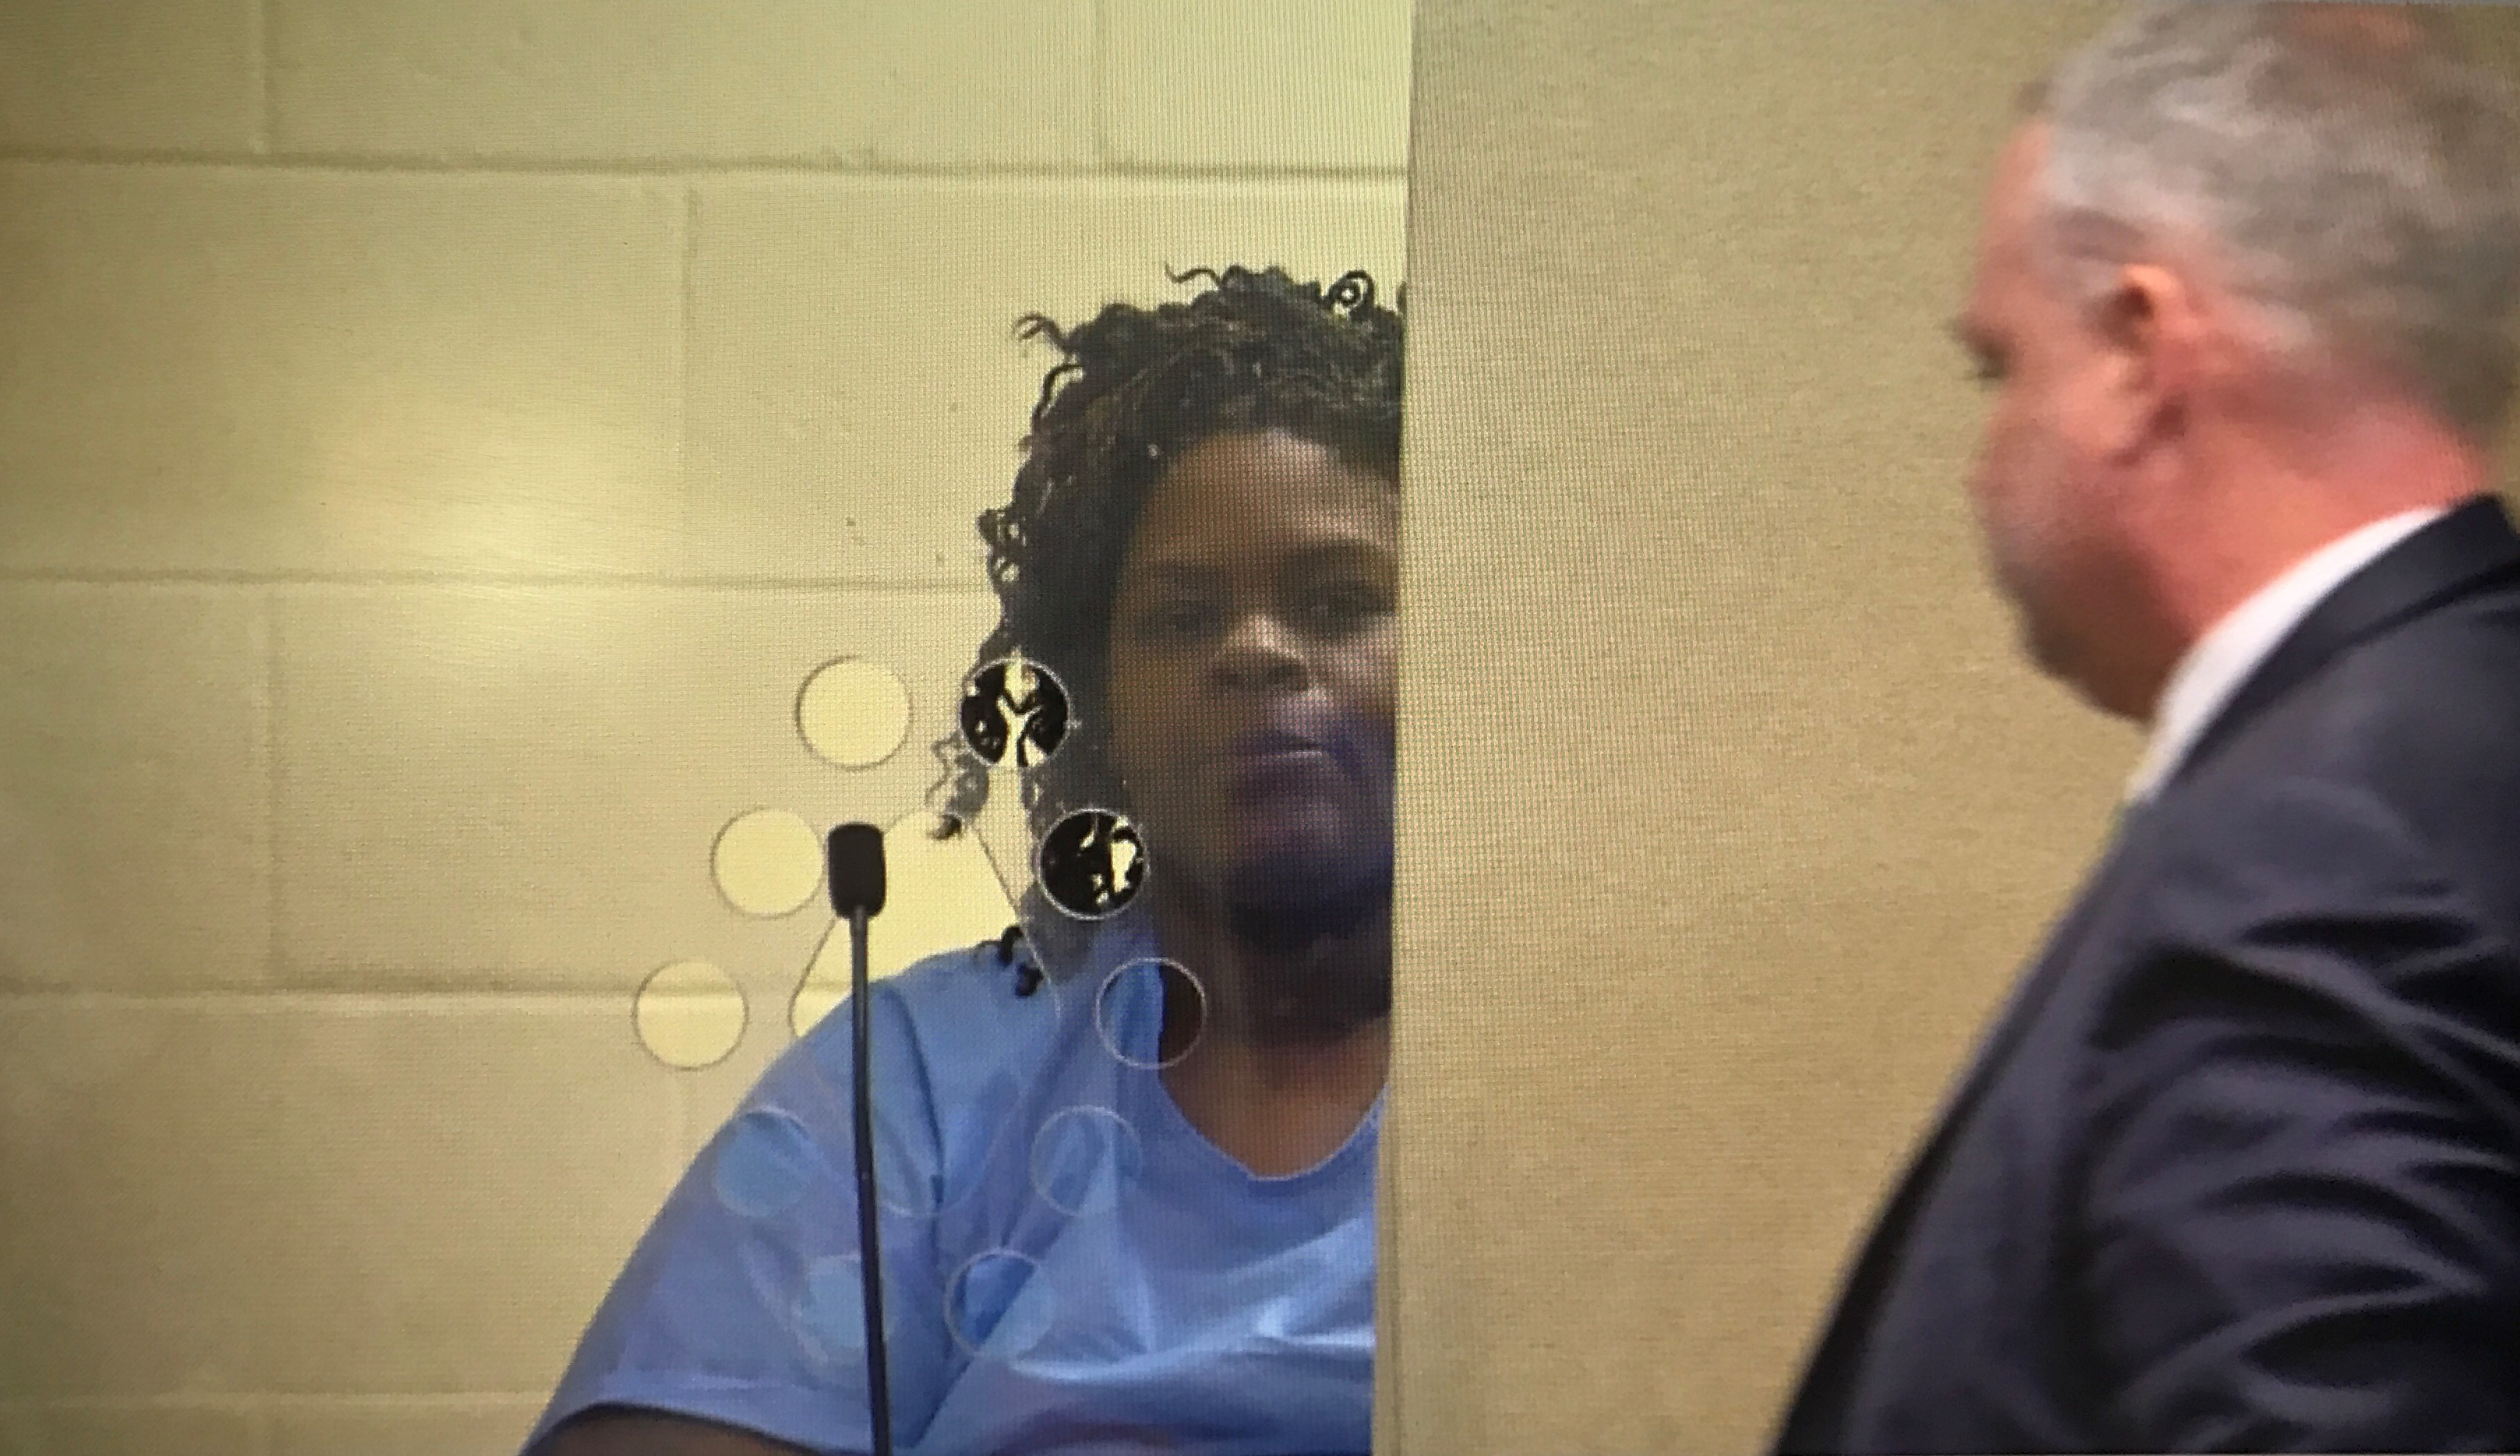 Latarsha Sanders is arraigned in Brockton District Court, Tuesday, Feb. 6, 2018, on two counts of murder in the killing of her young sons. (WJAR)